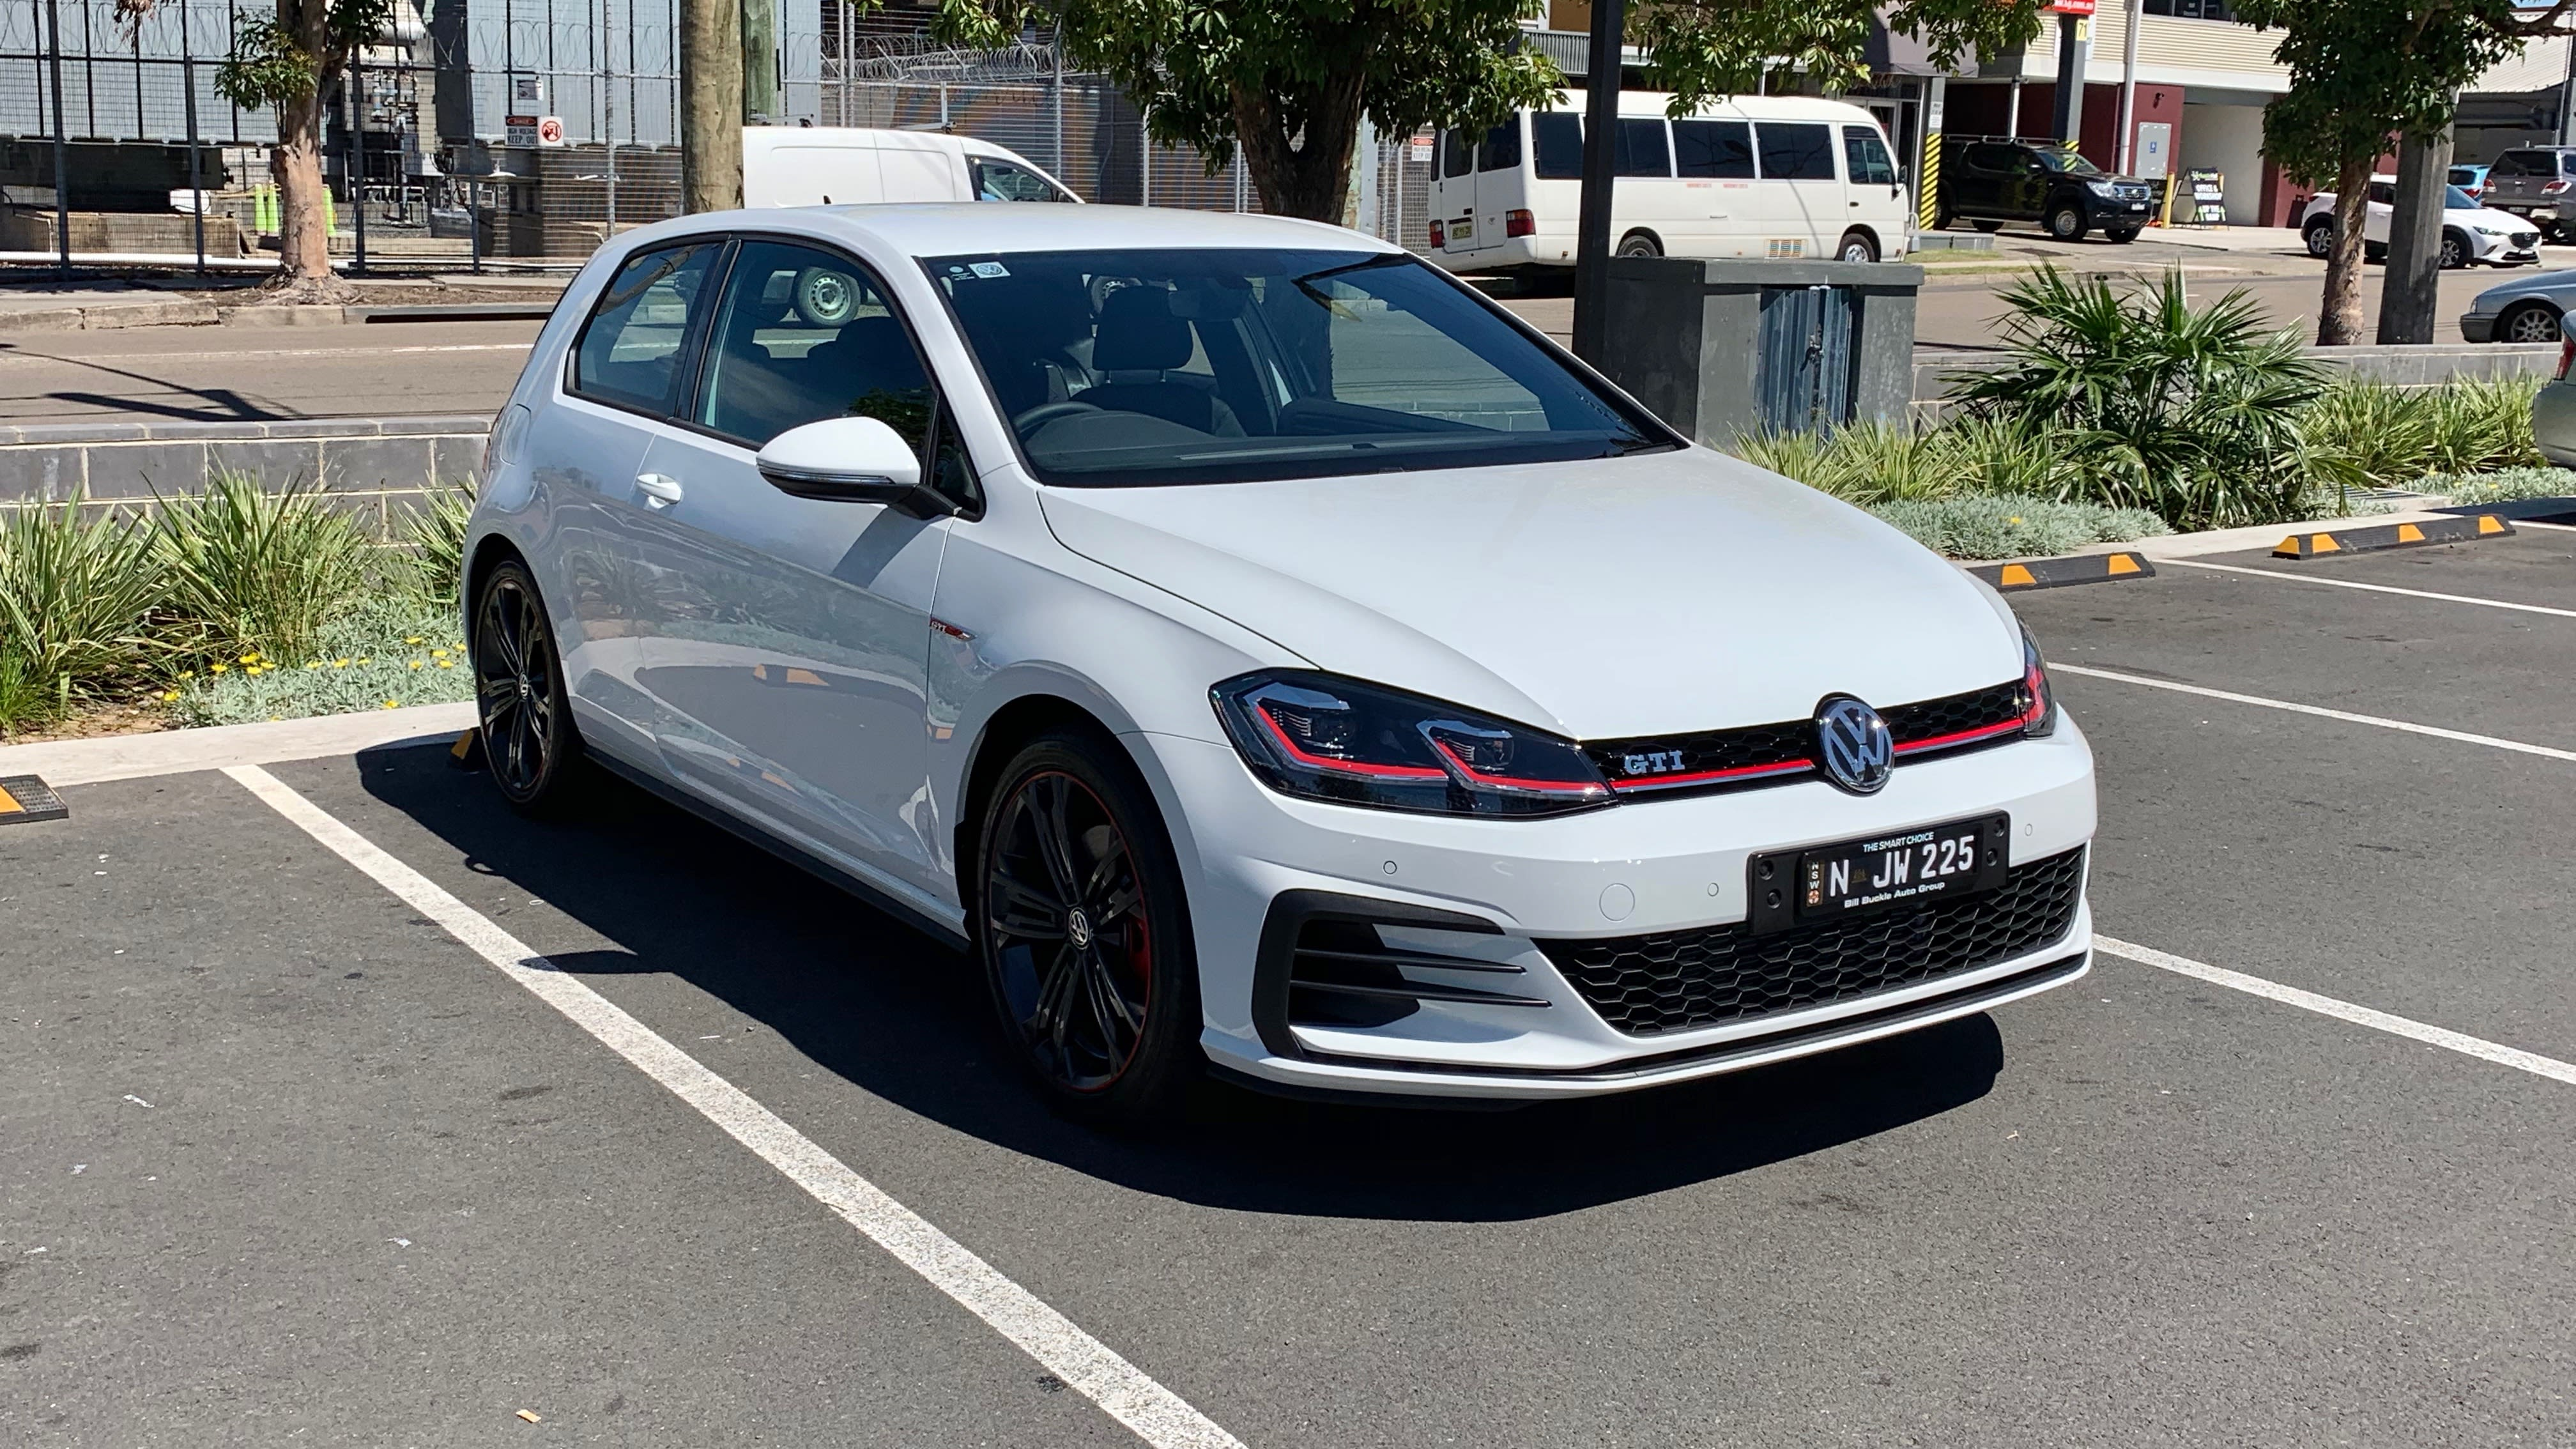 The Manual Golf Gti Is Now Extinct So I Bought One Of The Last Of Its Kind Carsguide Oversteer